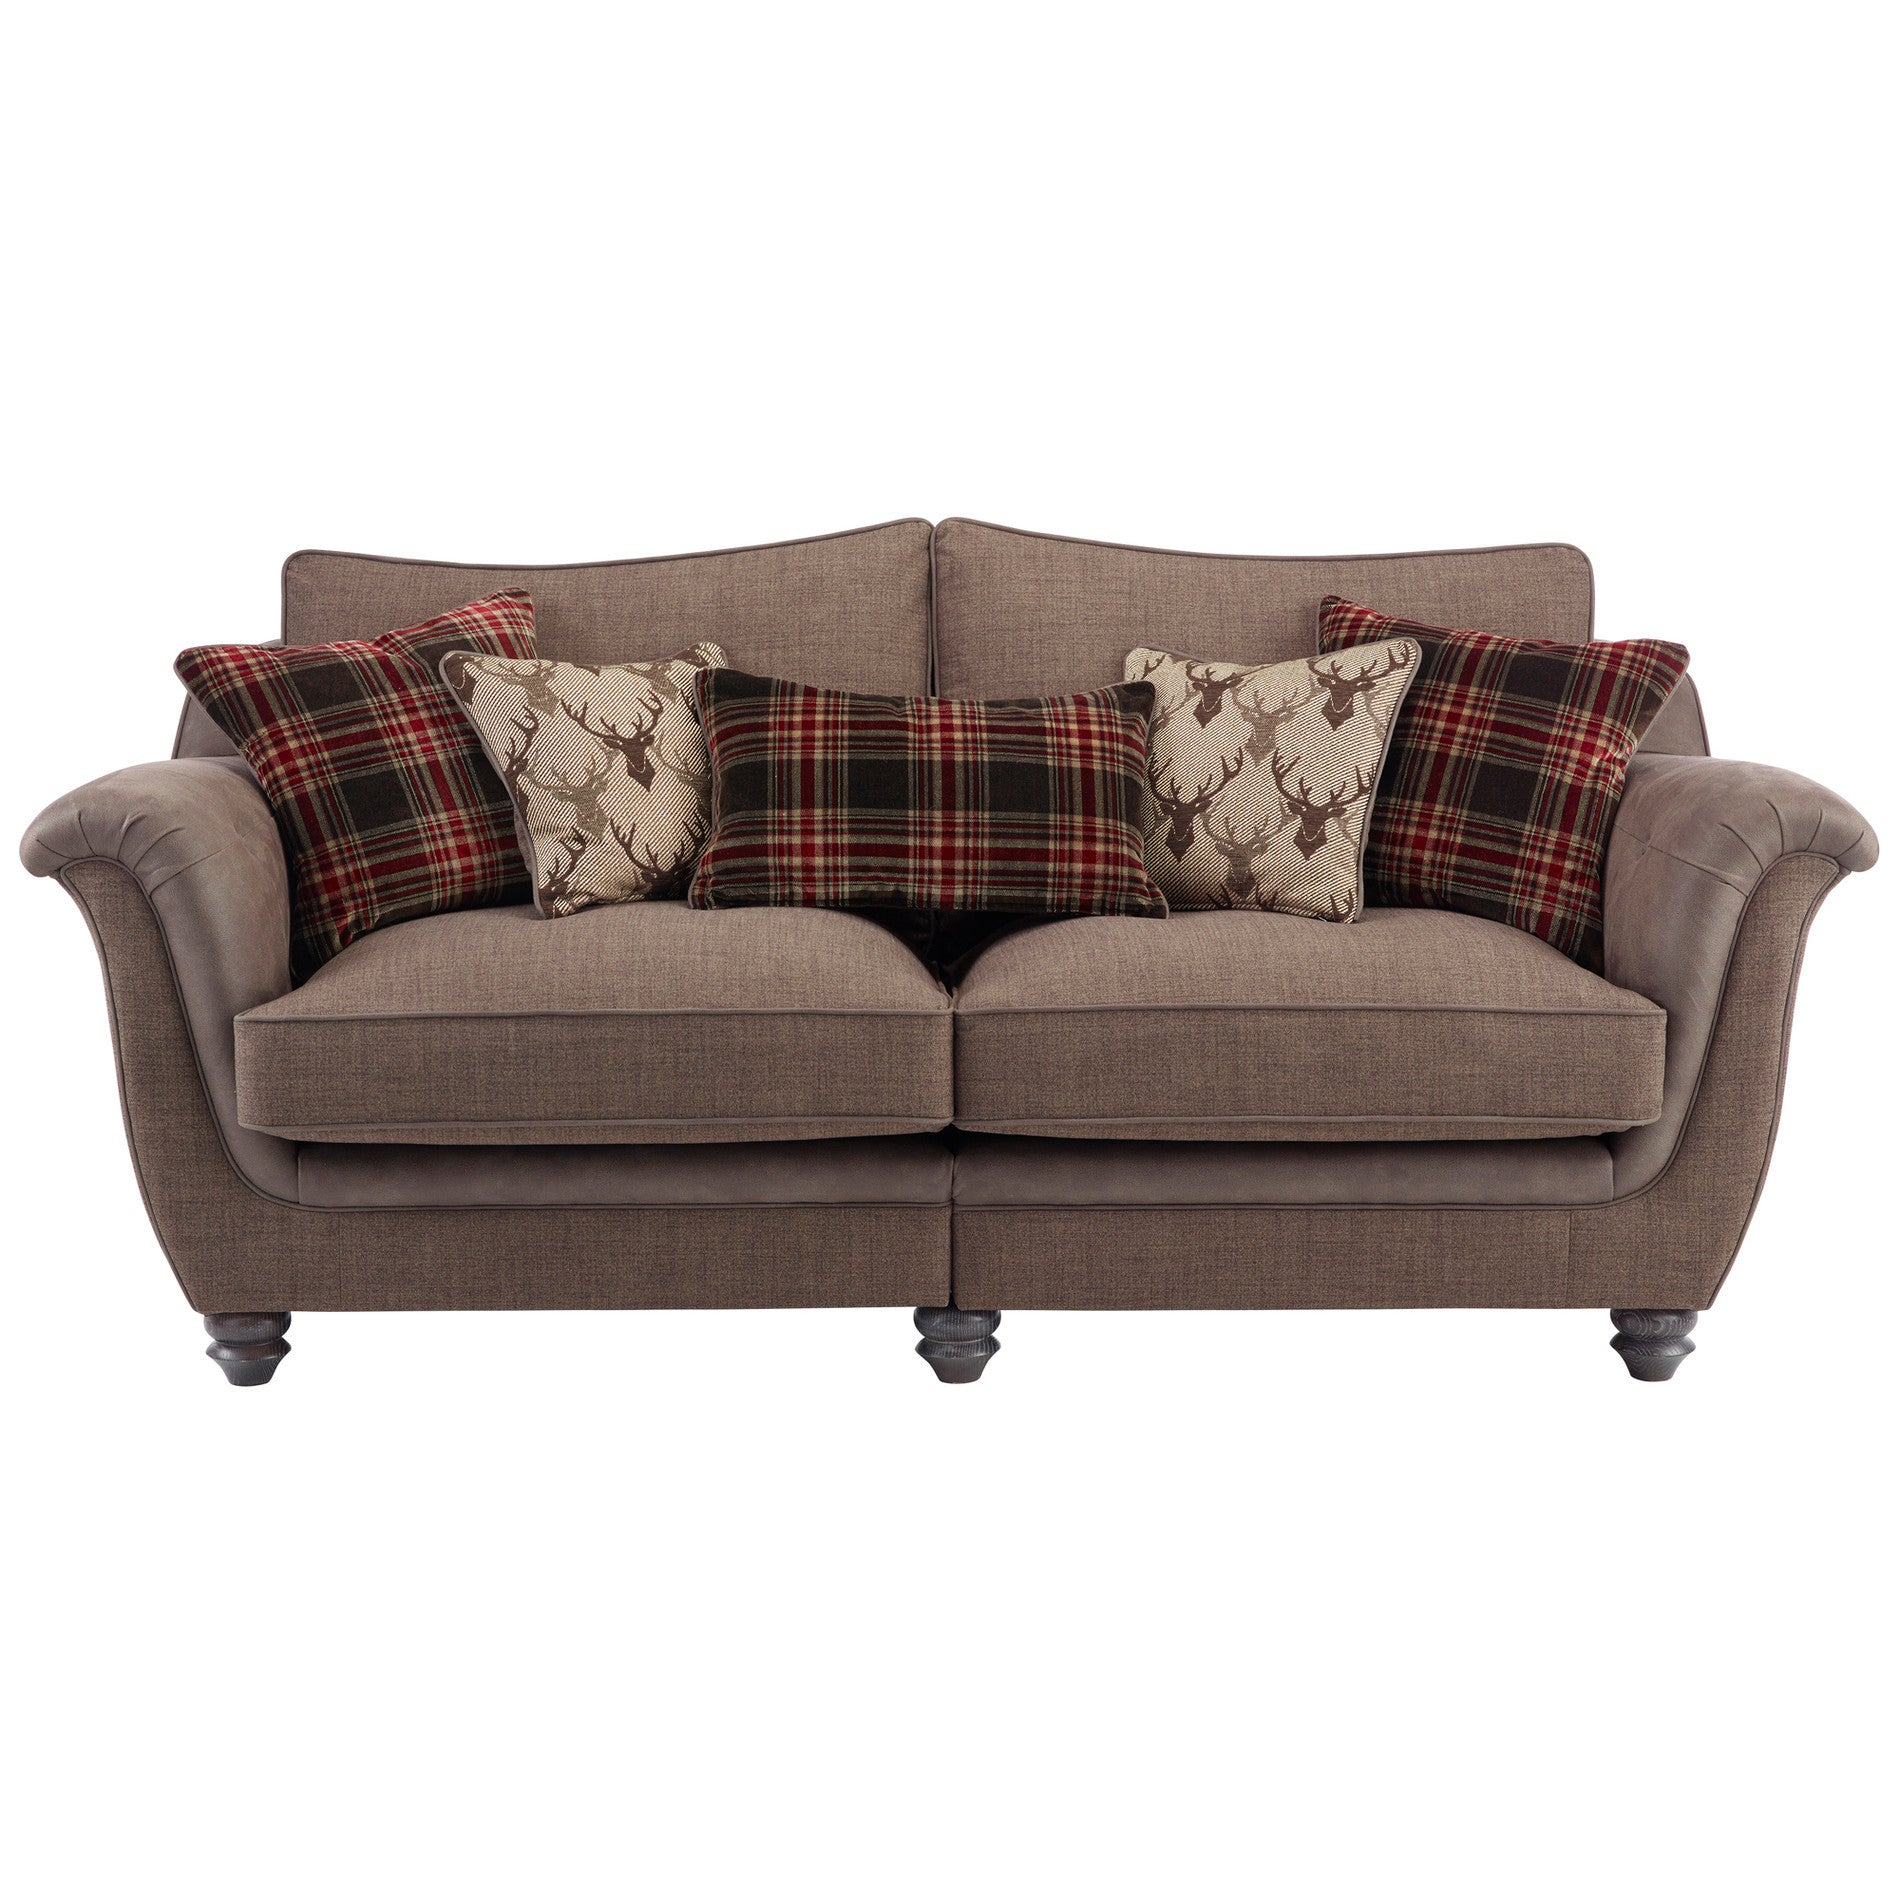 Galloway High Back Sofa in Blyth Fabric Brown with Brown